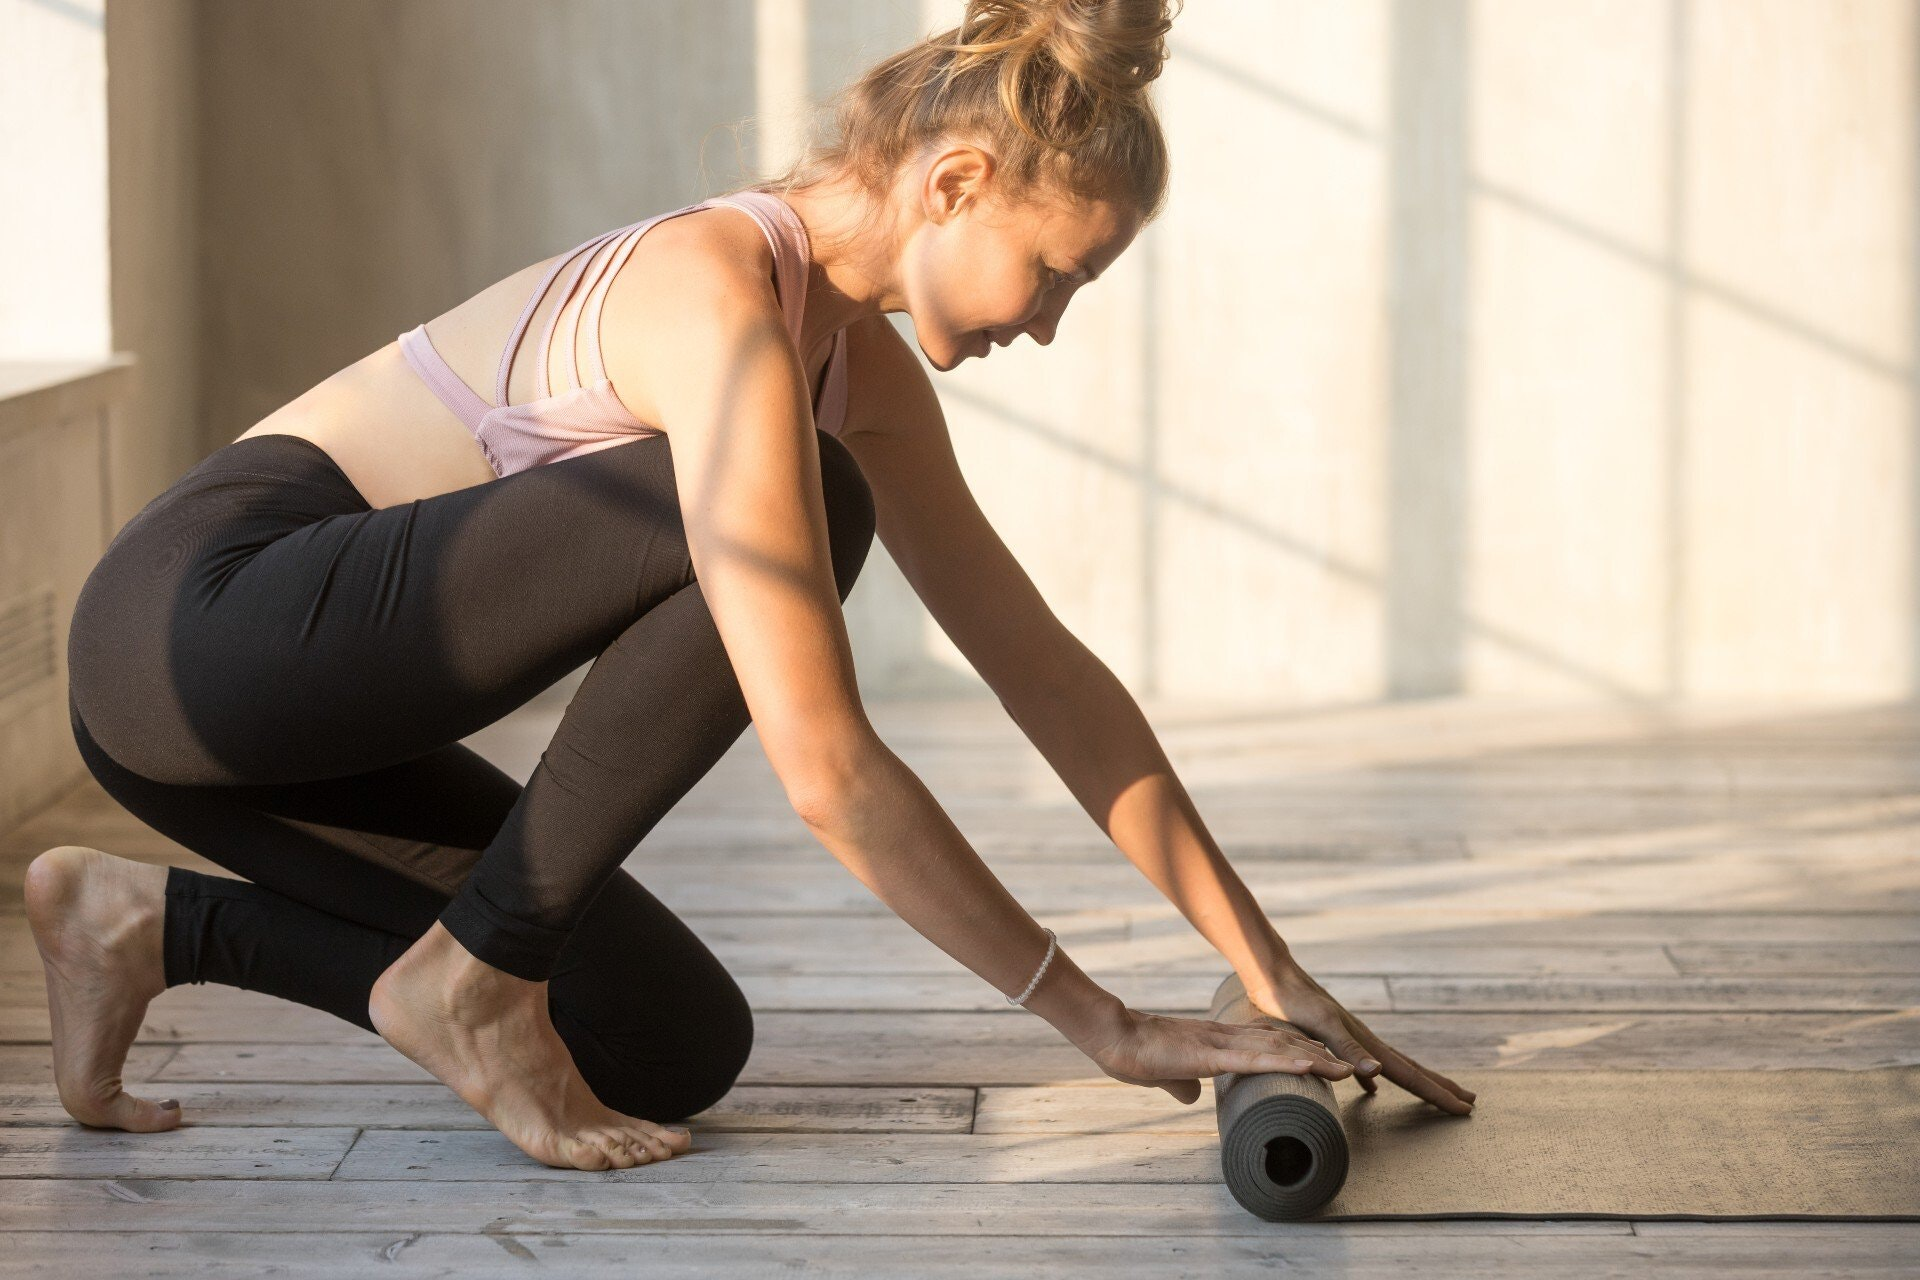 What is Tailbone Liposuction and Where Should I Go In Nashville